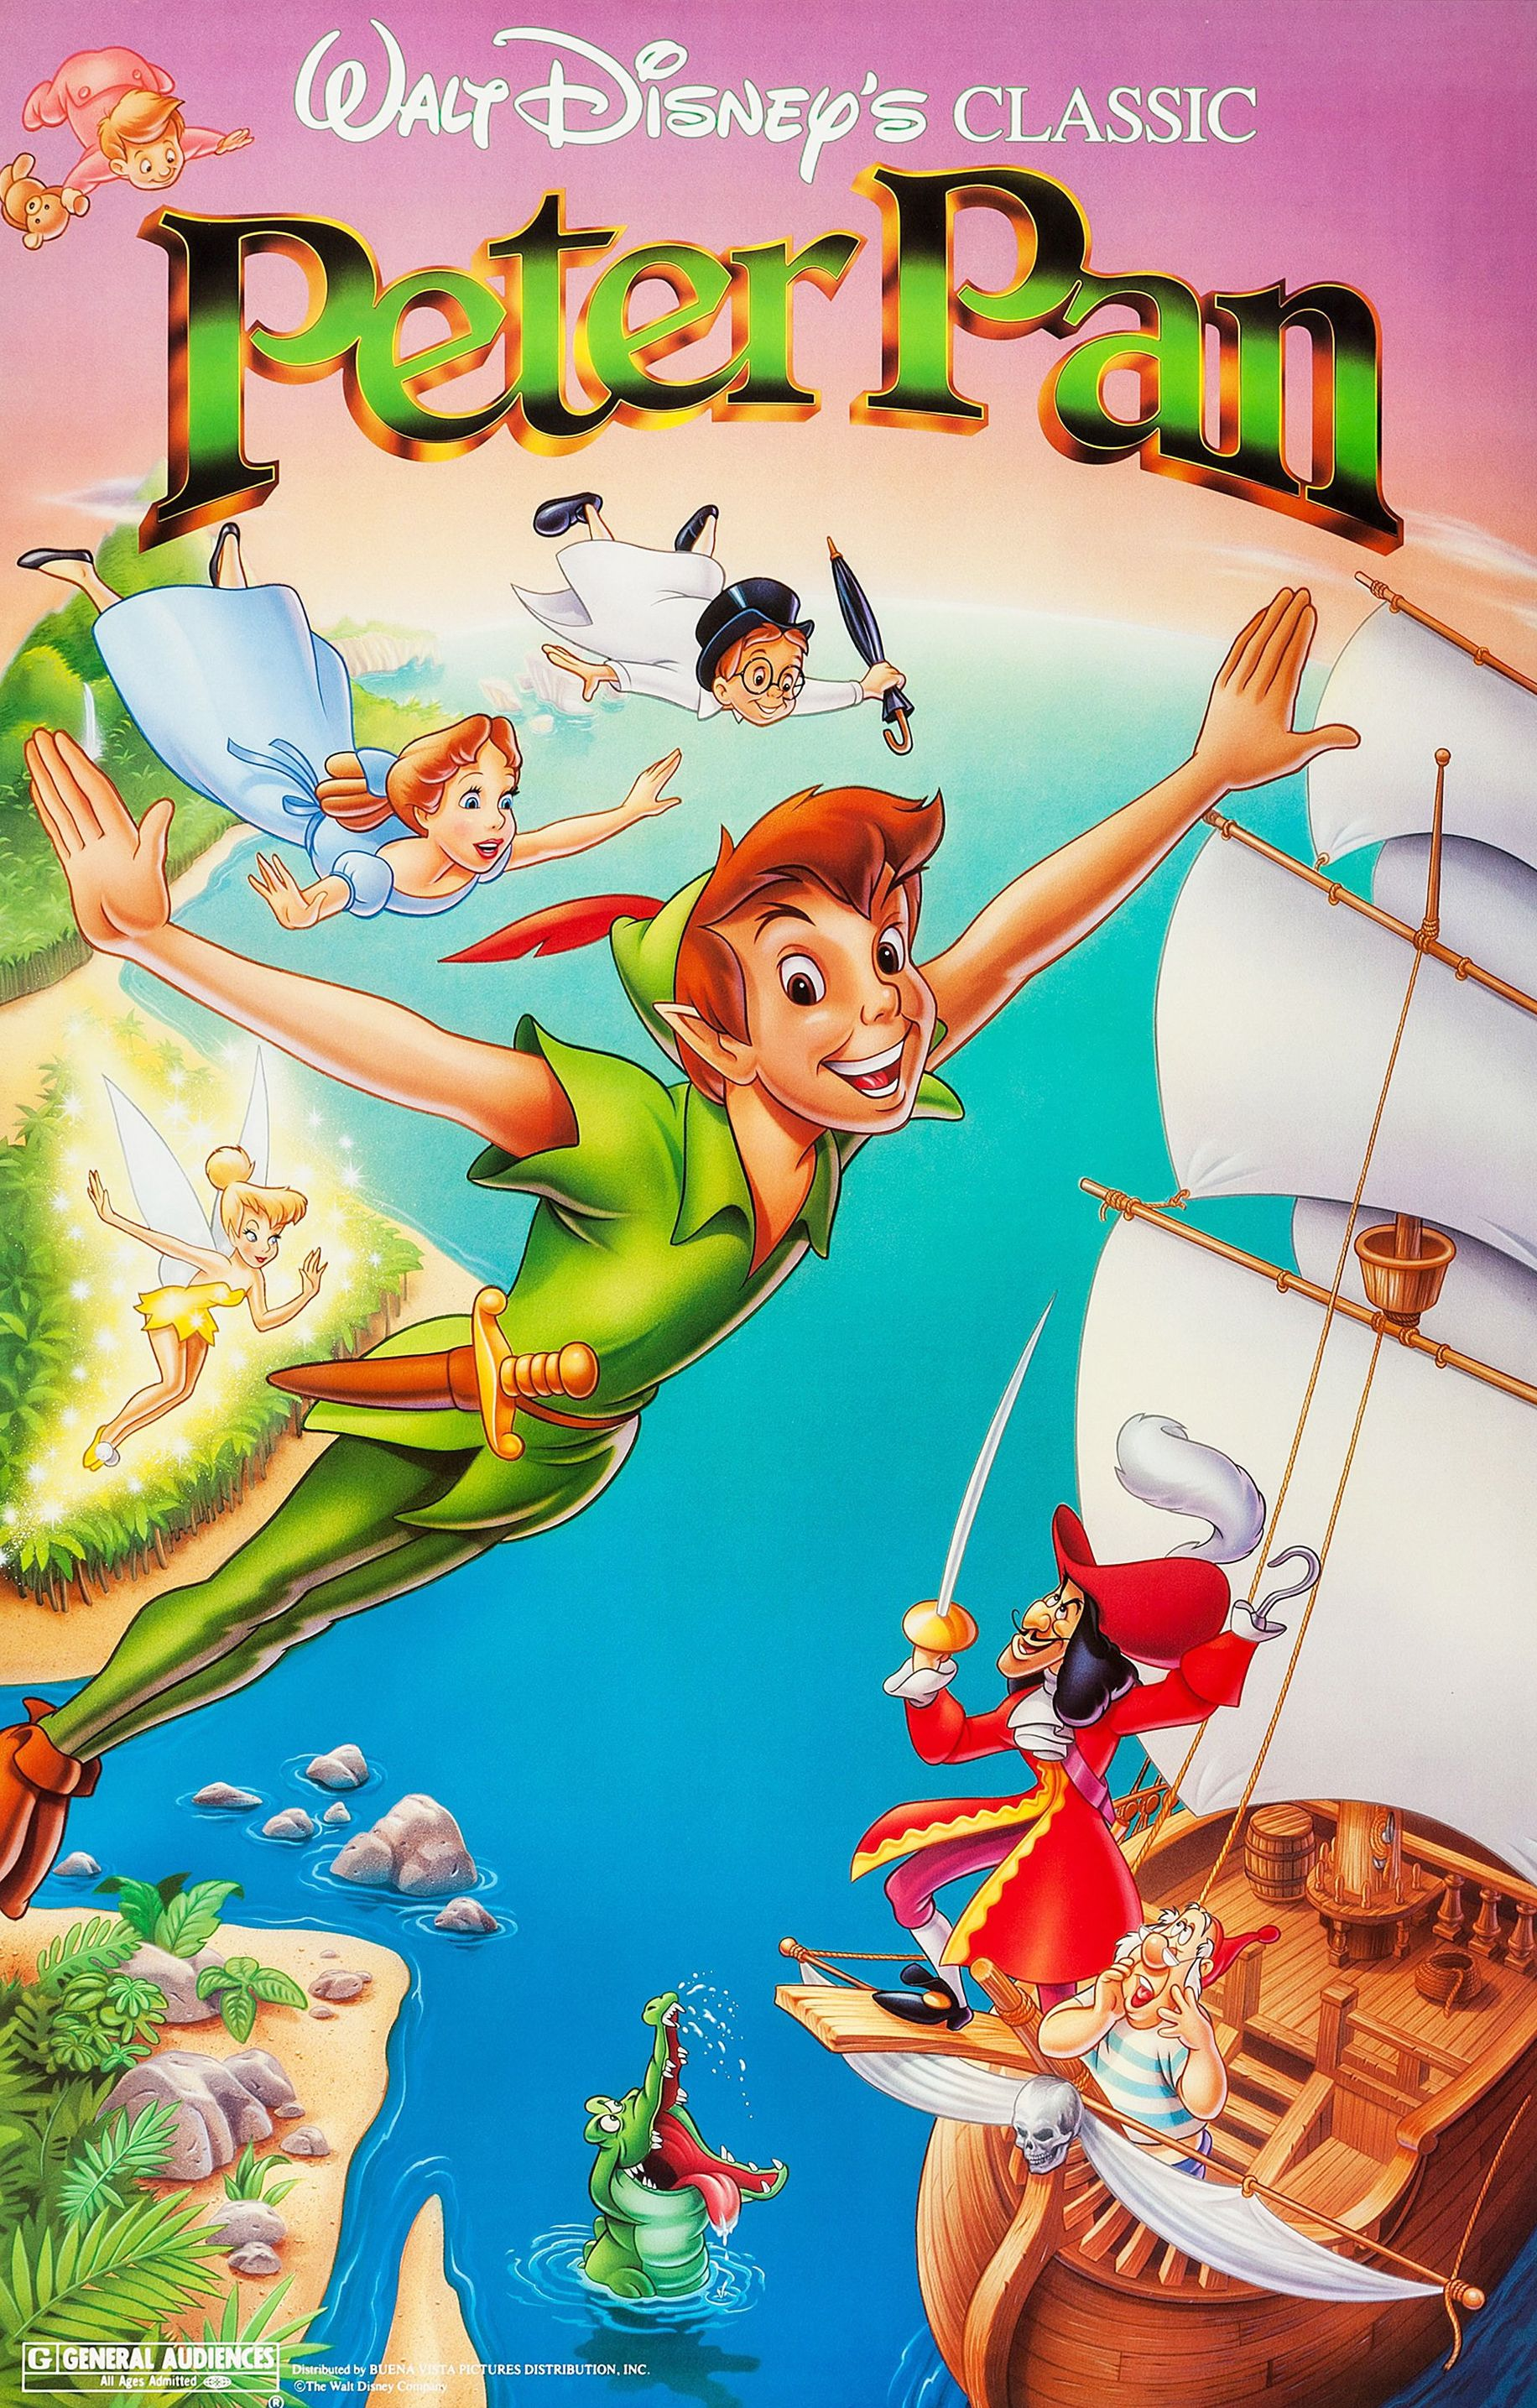 Peter Pan & Wendy: Everything We Know About Disney's Live-Action Remake